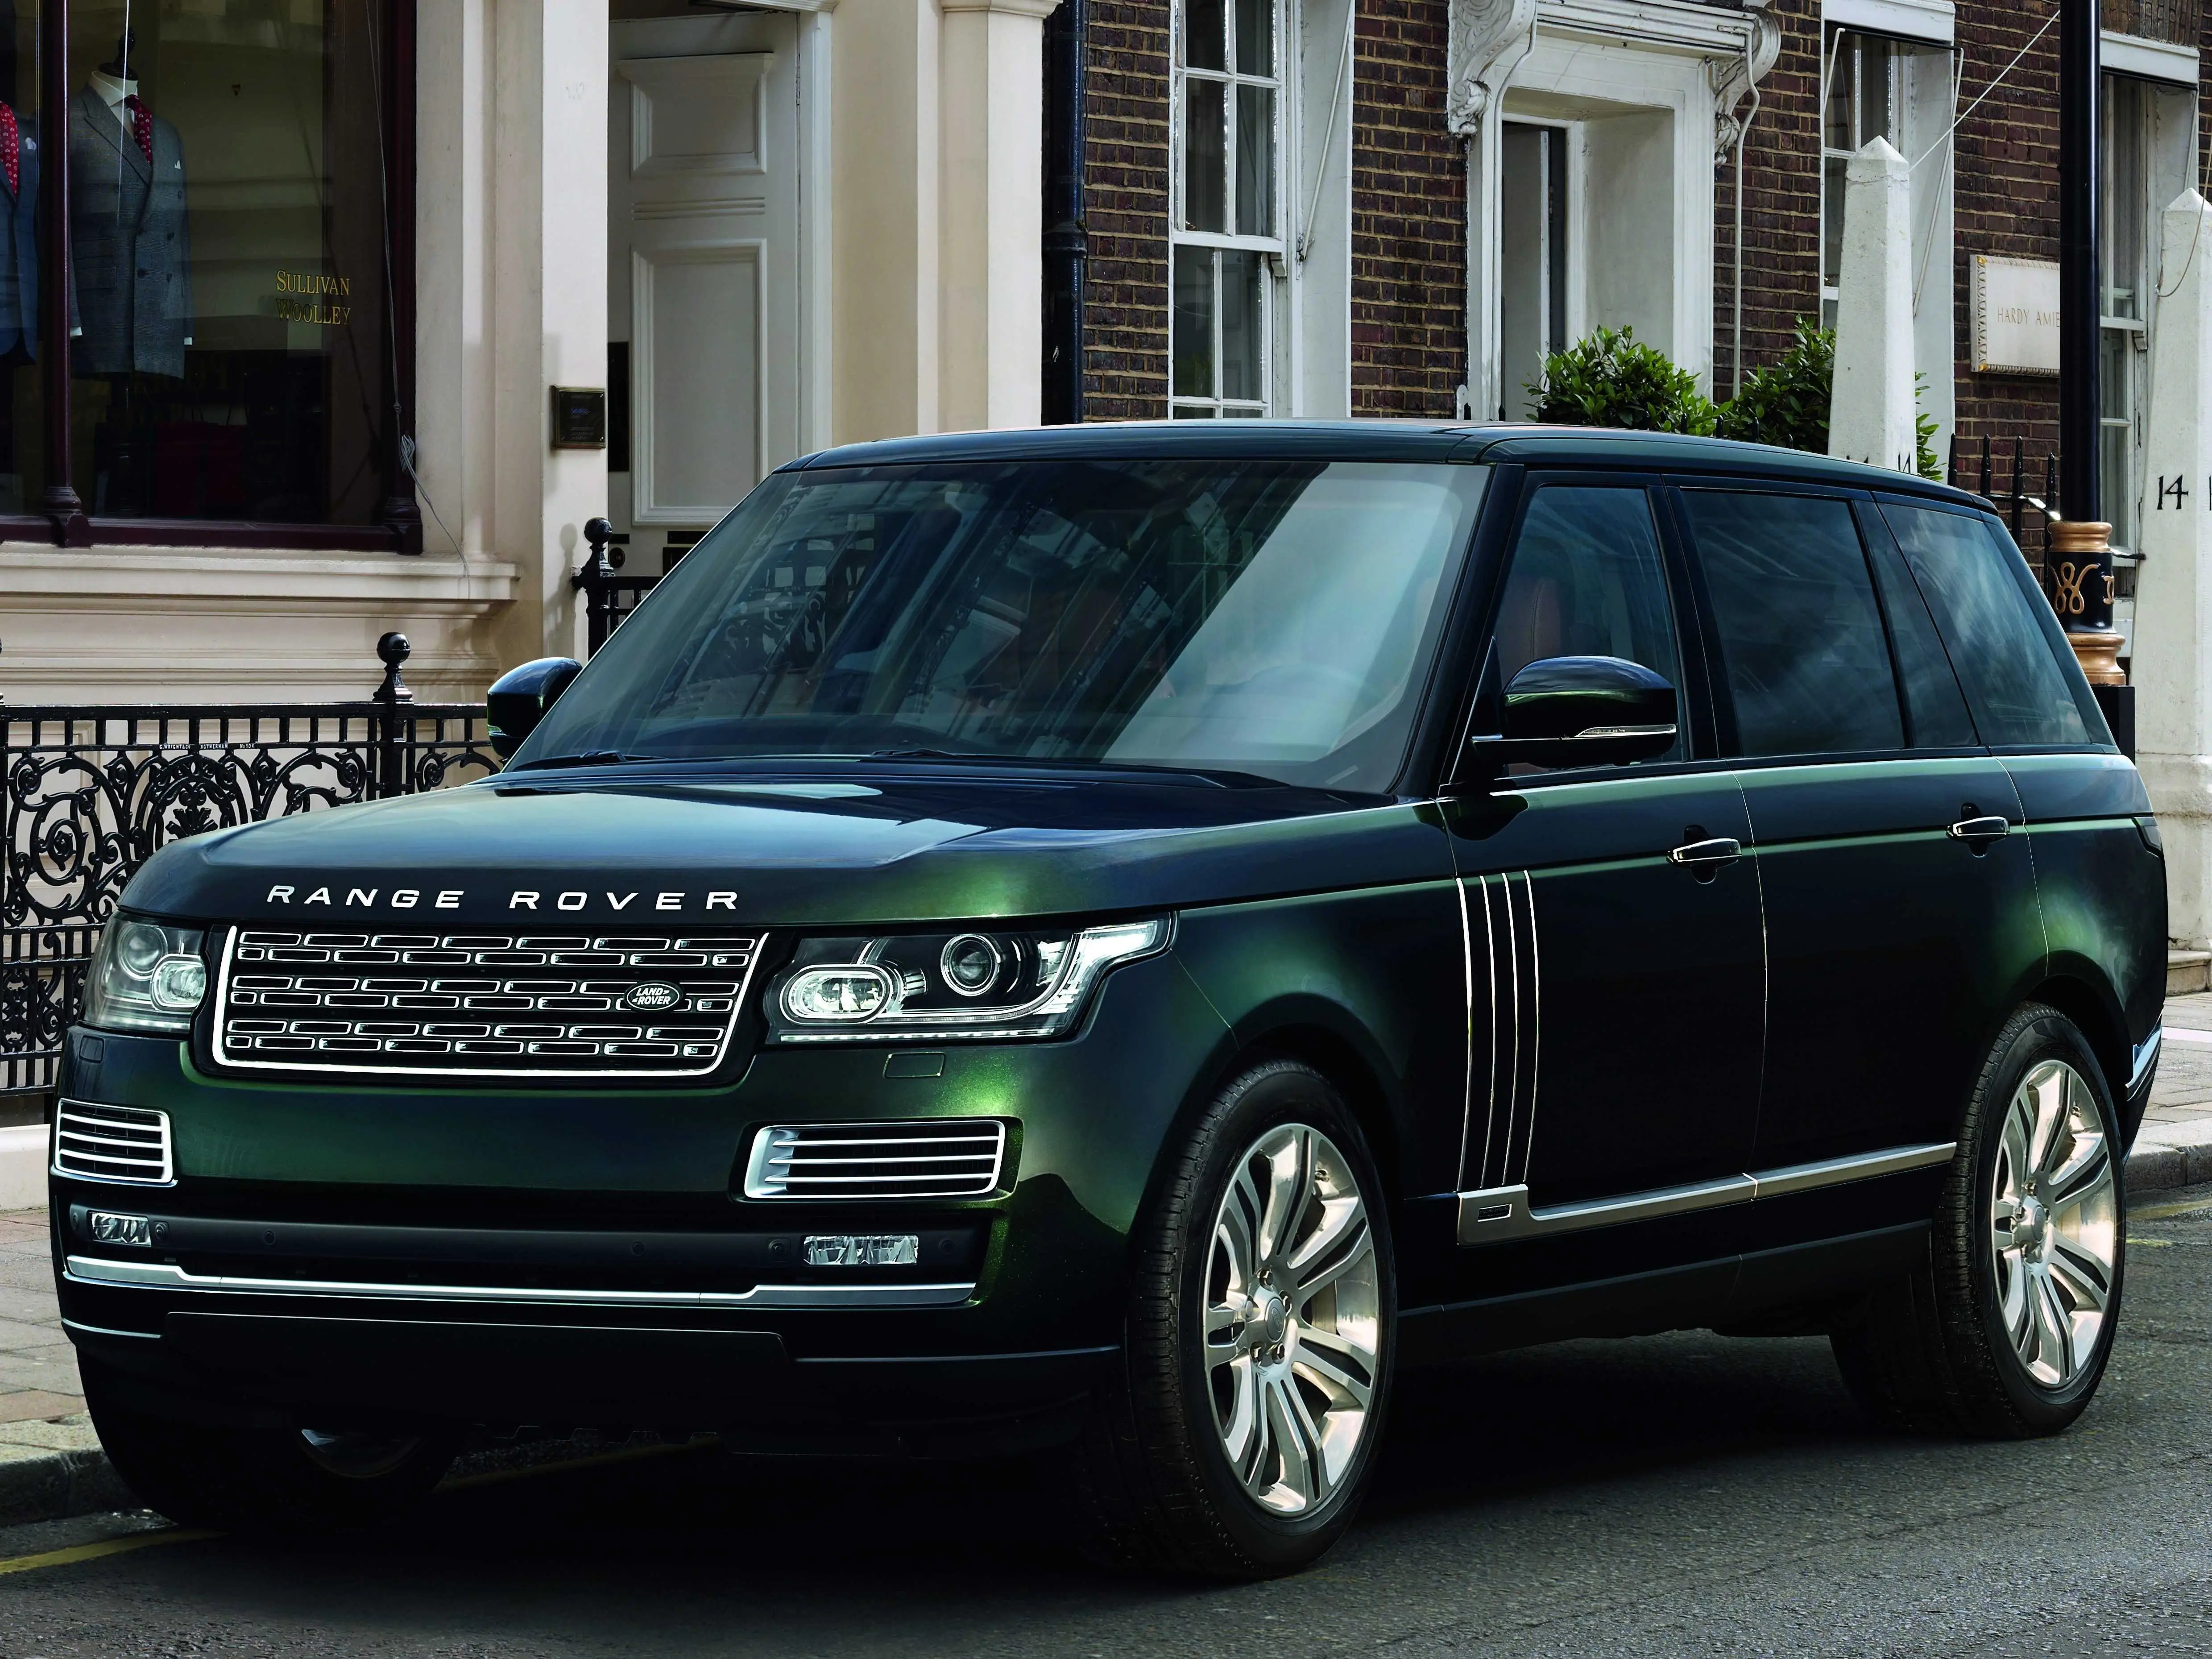 The Most Expensive Range Rover All Time Is An Homage To A